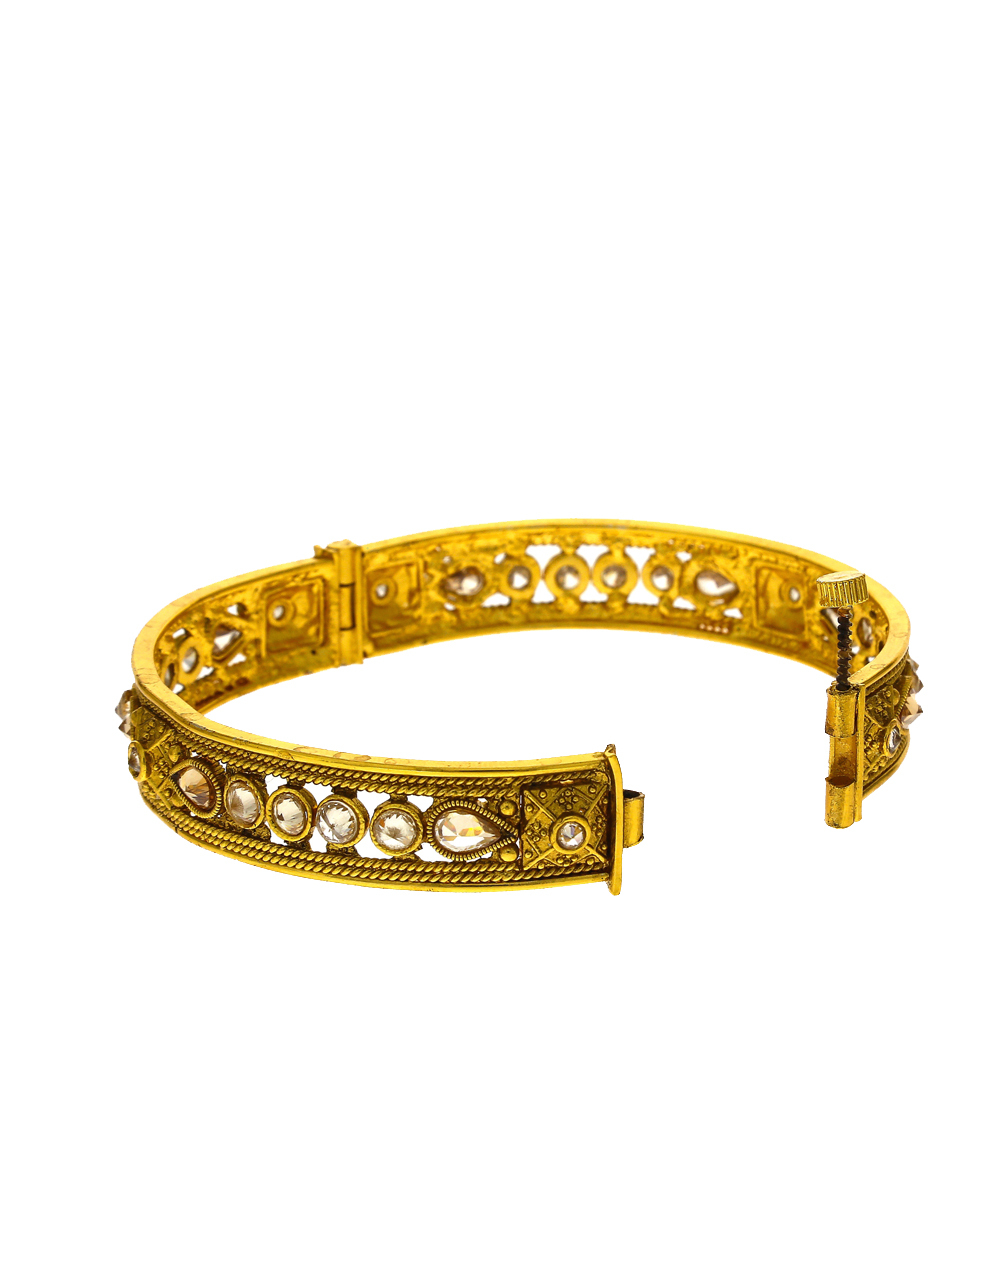 Exclusive Golden Colour LCT Stone Studded Traditional Bangles For Women Design.